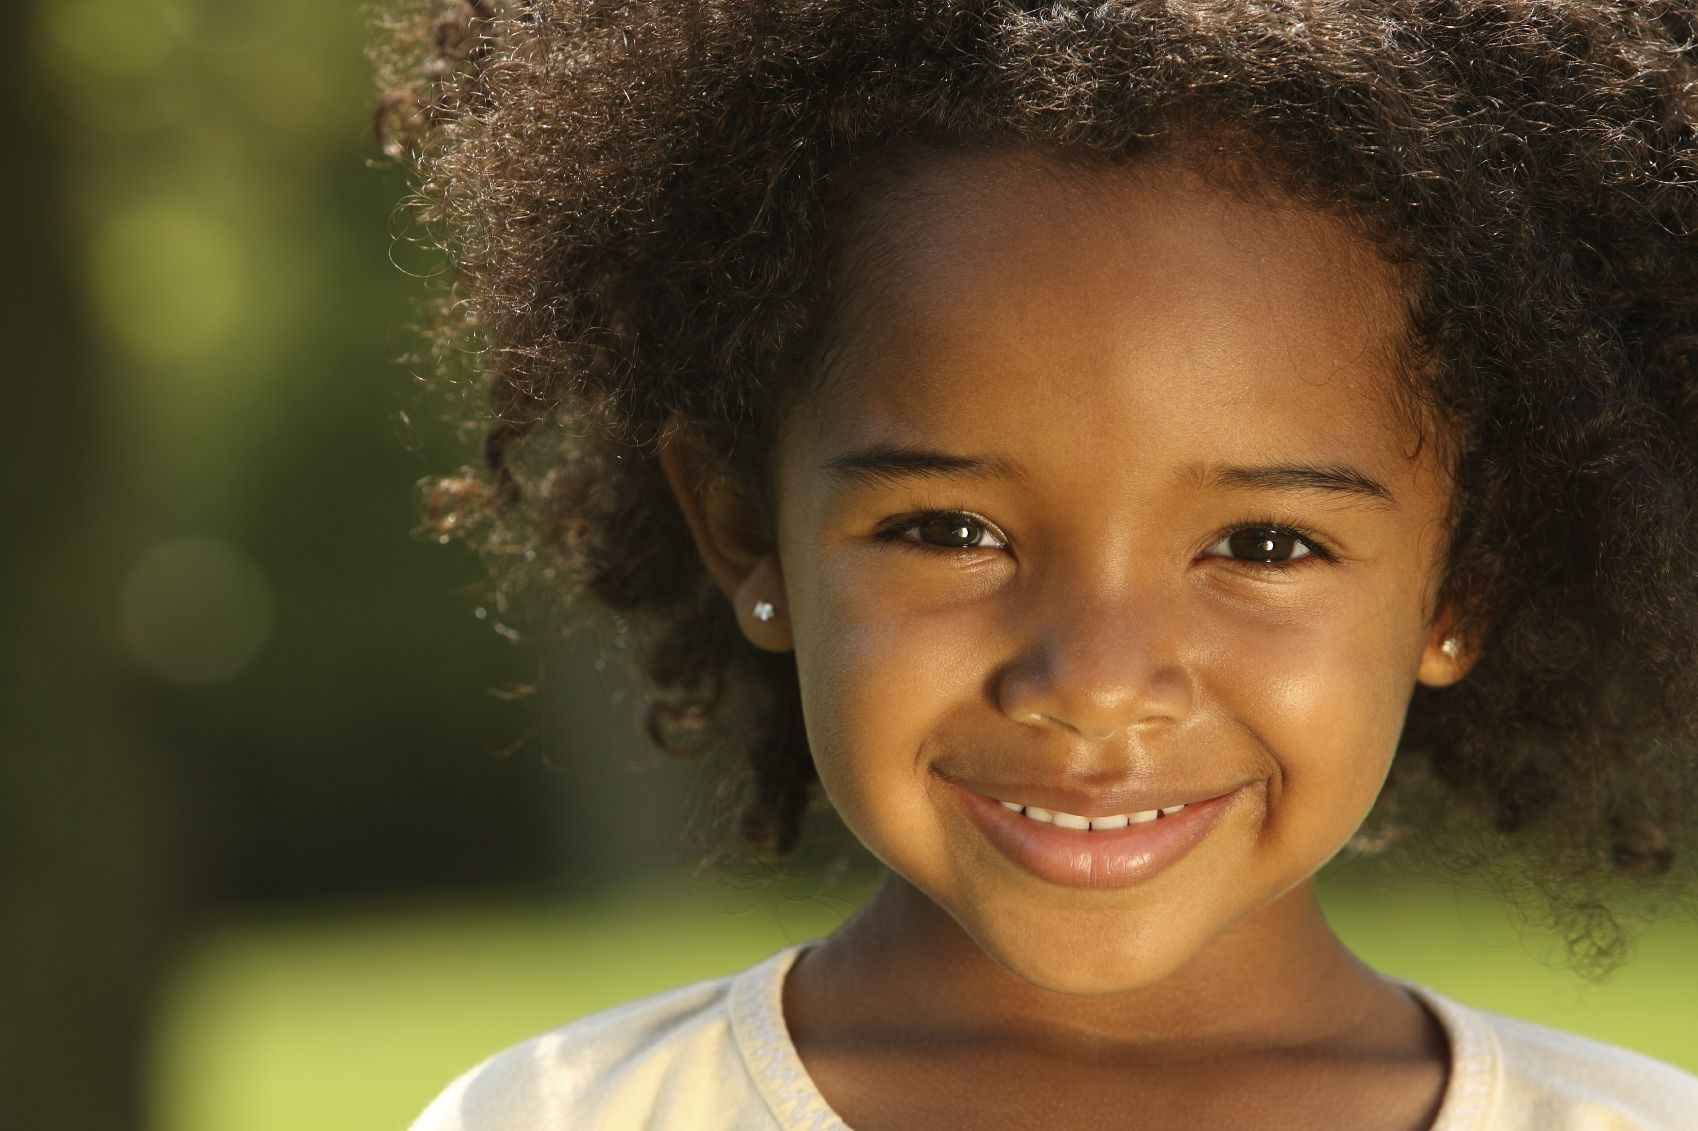 I found this on a Kids' Club website. Awesome Smile. I blogged about how I made a little girl smile @ http://kobewebs.blogspot.com